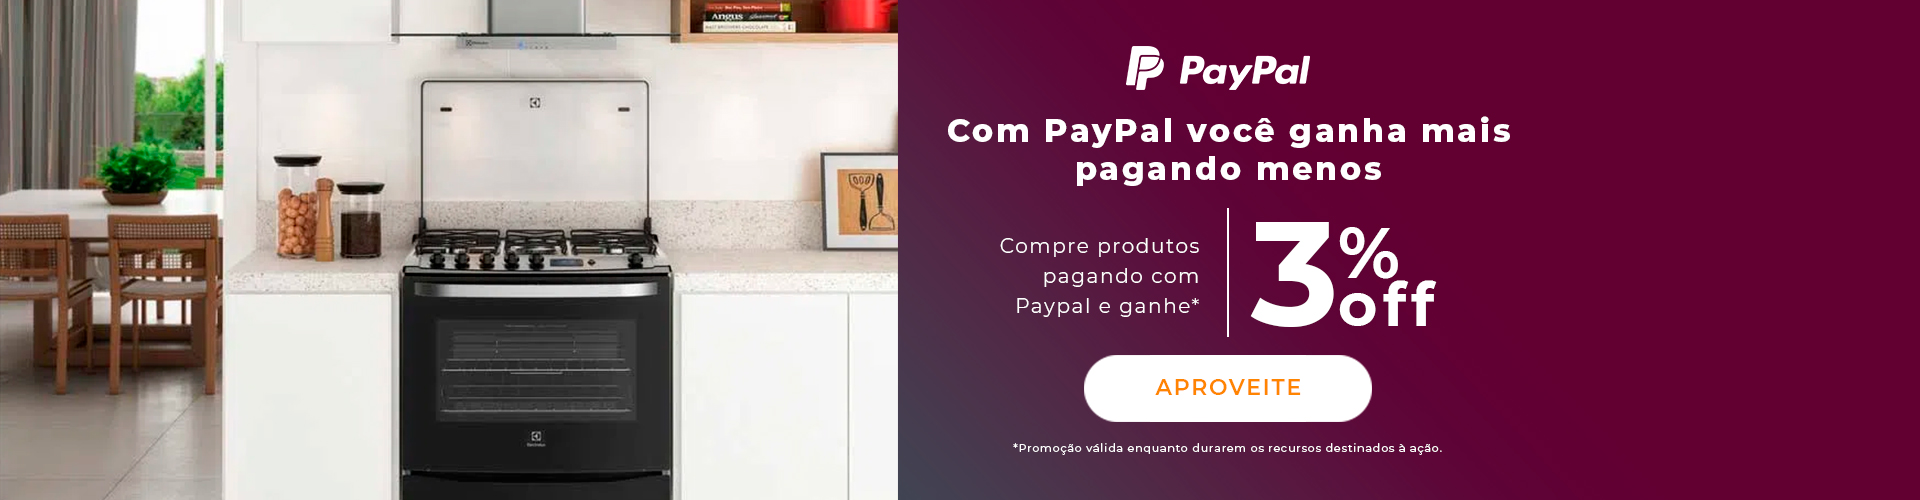 inverno paypal 3 off